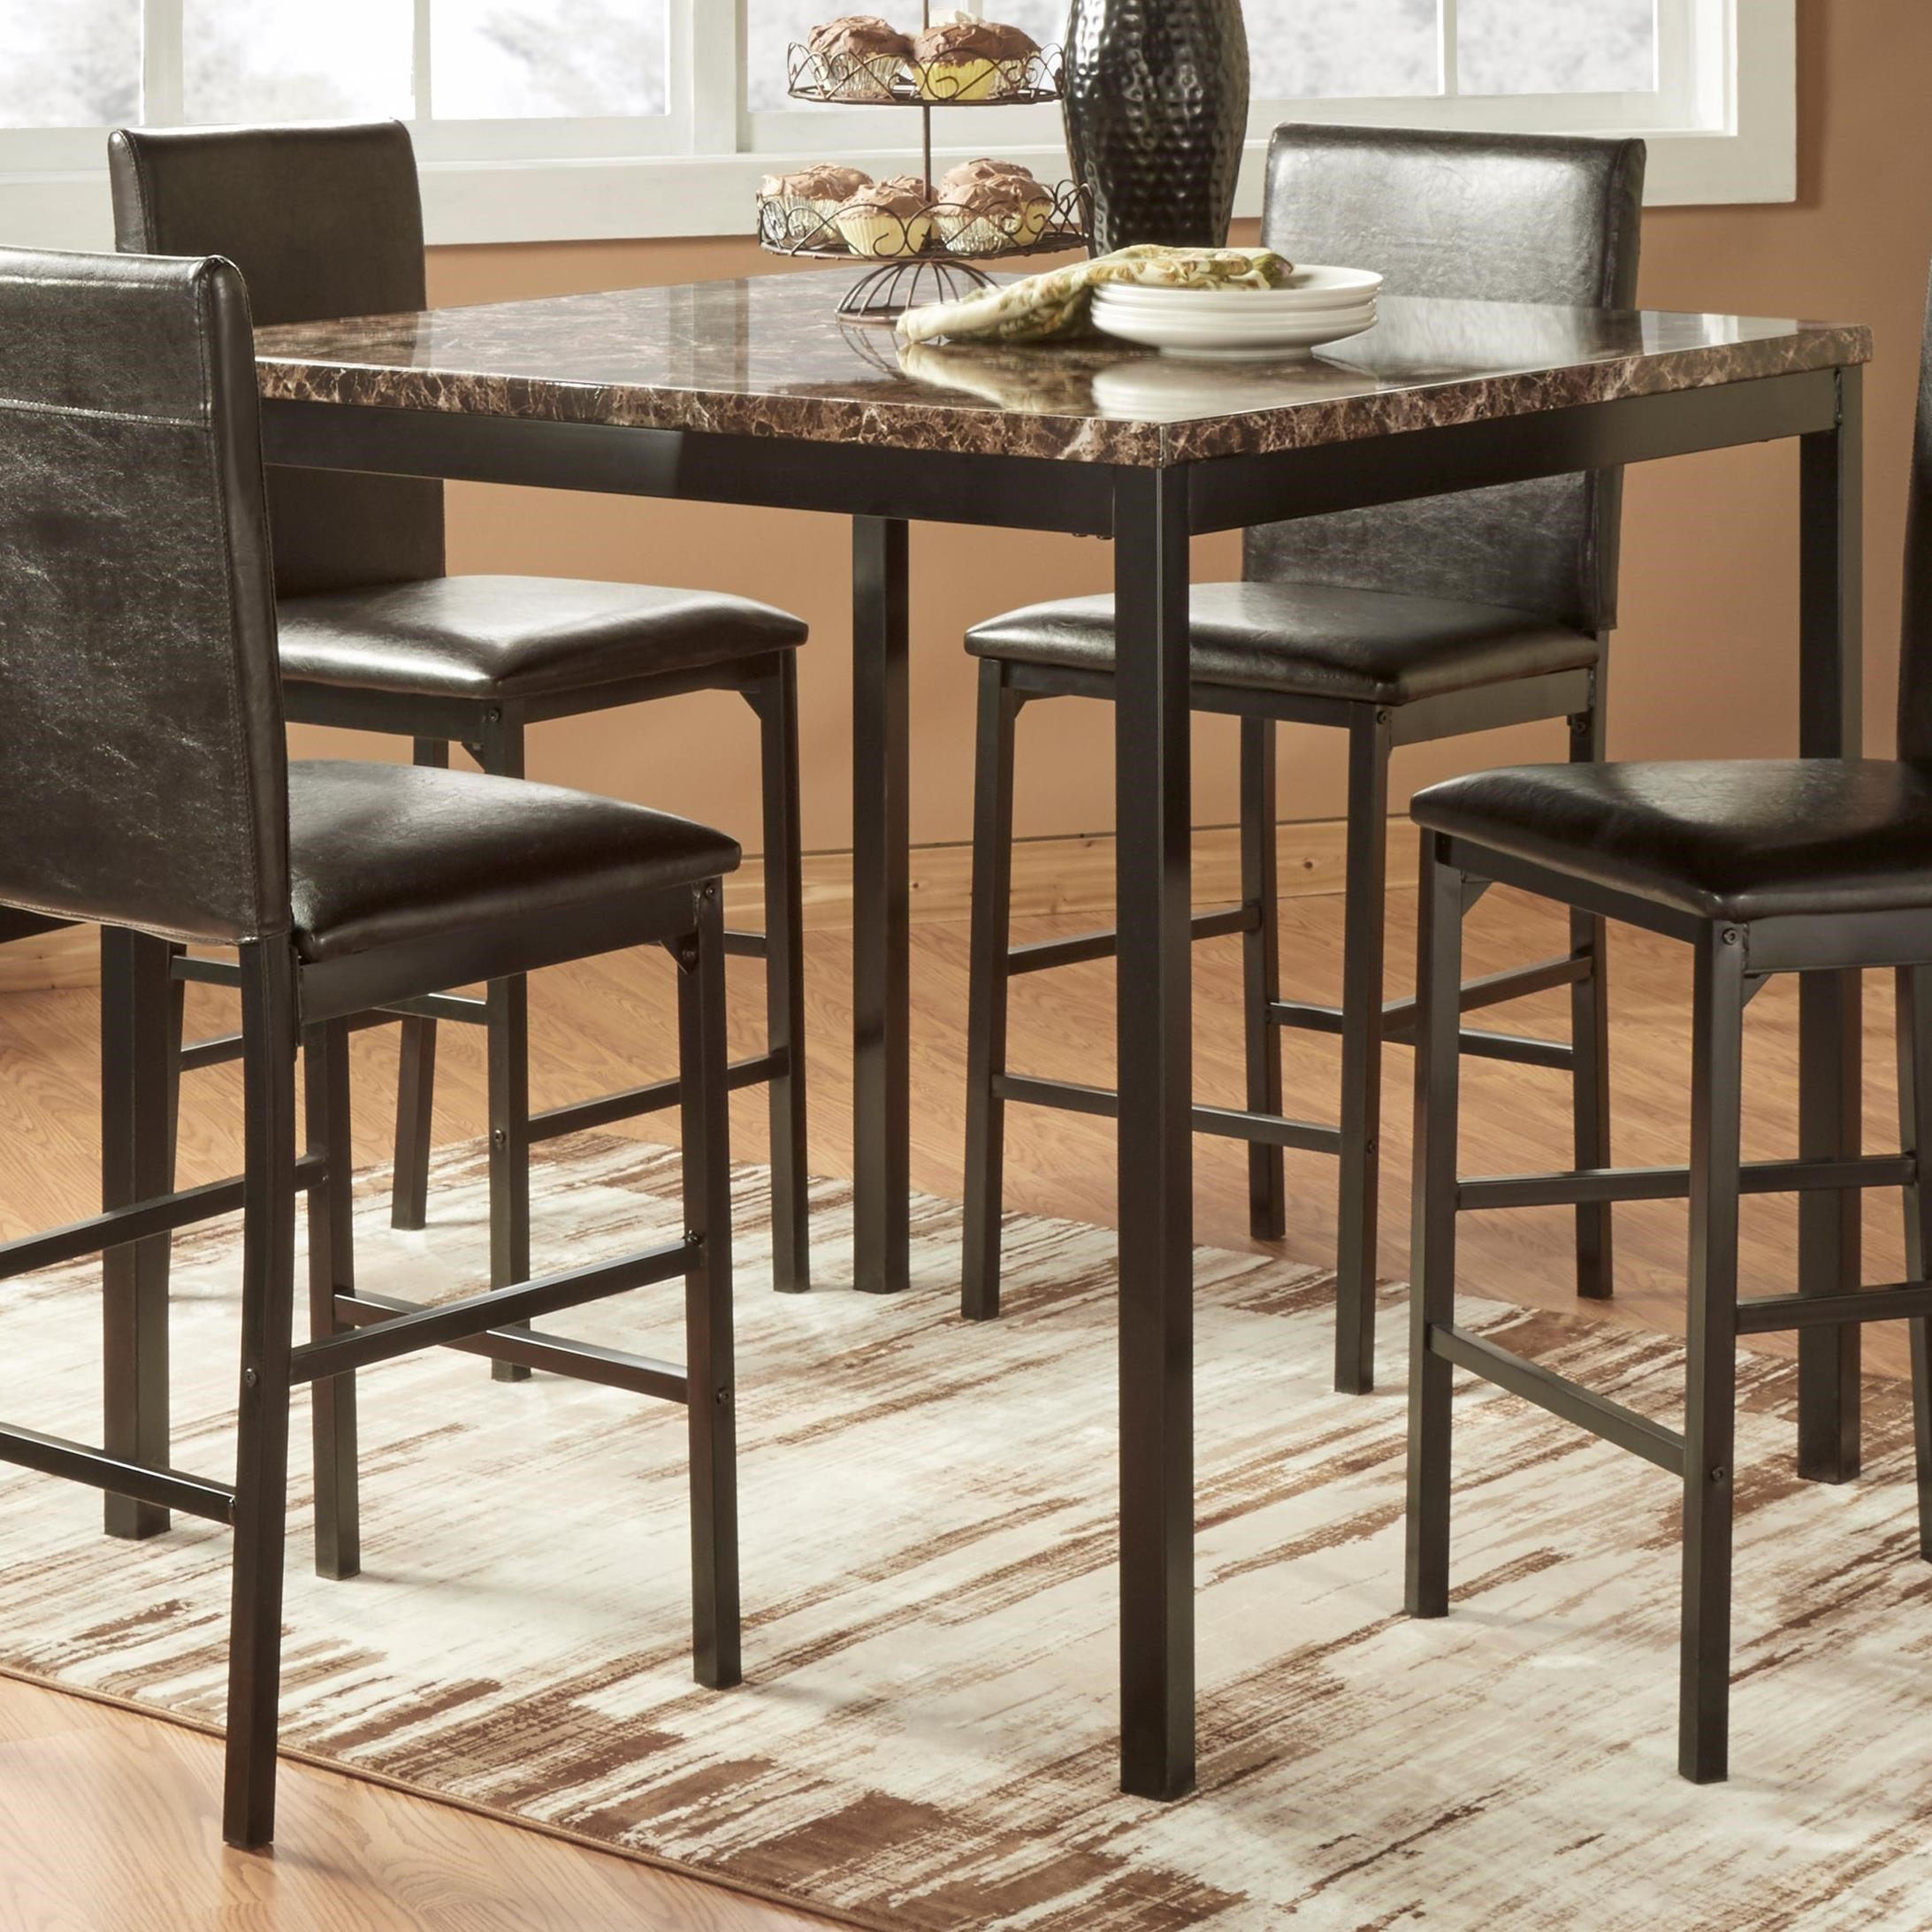 Value City Furniture Living Room Sets >> Homelegance Tempe Casual Pub Table with Faux Marble Top | Value City Furniture | Pub Tables